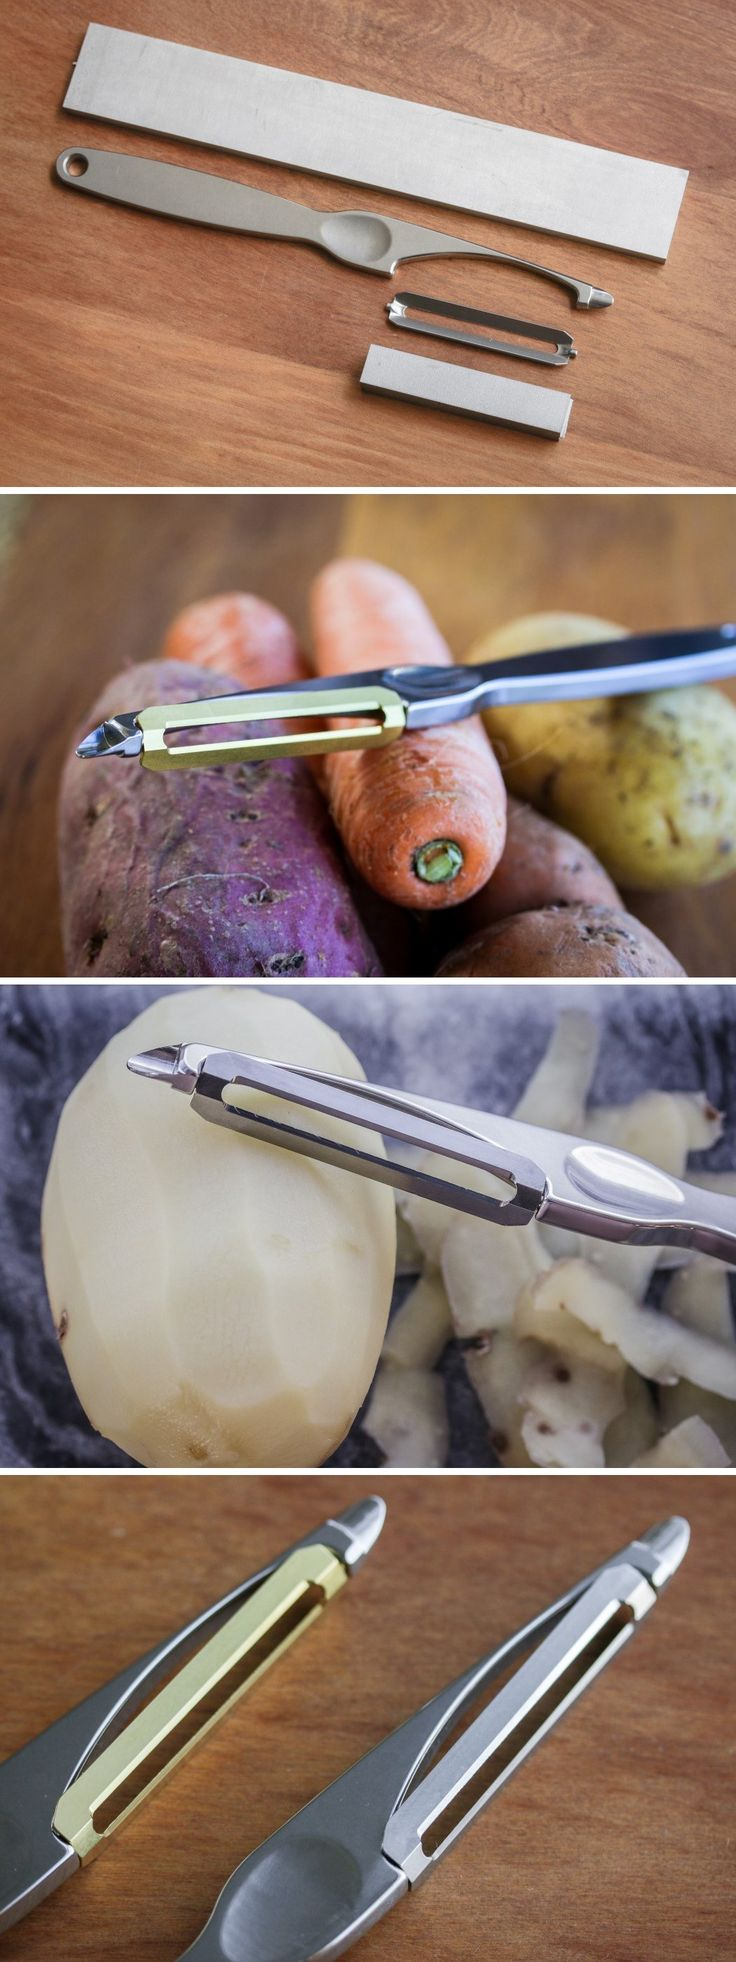 The Titanium Peeler can peel a goddamn tree. It's the ultimate peeling device with its titanium body AND blade. Lightweight, ergonomic, and incredibly resilient, you can use the Titanium peeler to peel pretty much anything you please. However we sincerely hope you stick to fruits and vegetables! Read More at Yanko Design.